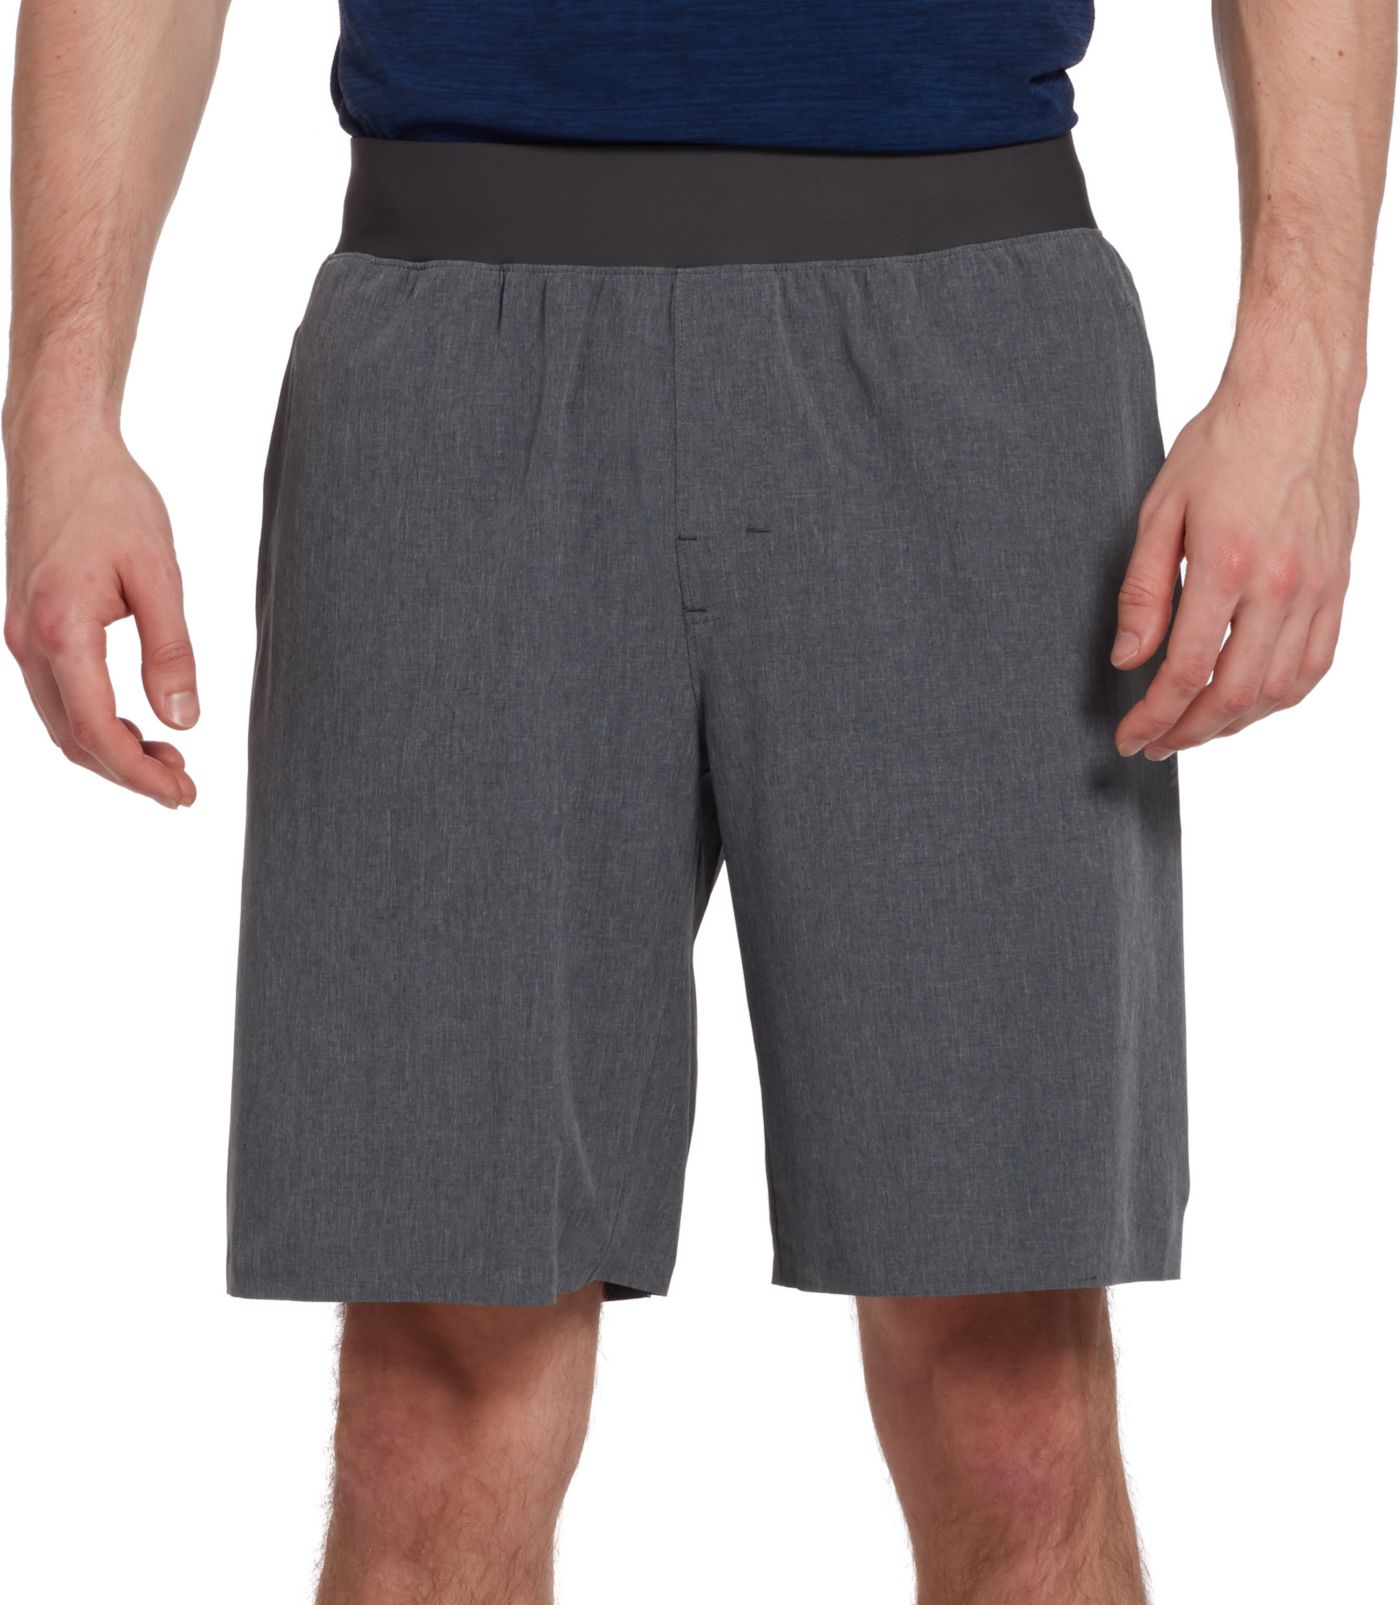 SECOND SKIN Men's Heather Stretch Woven Shorts